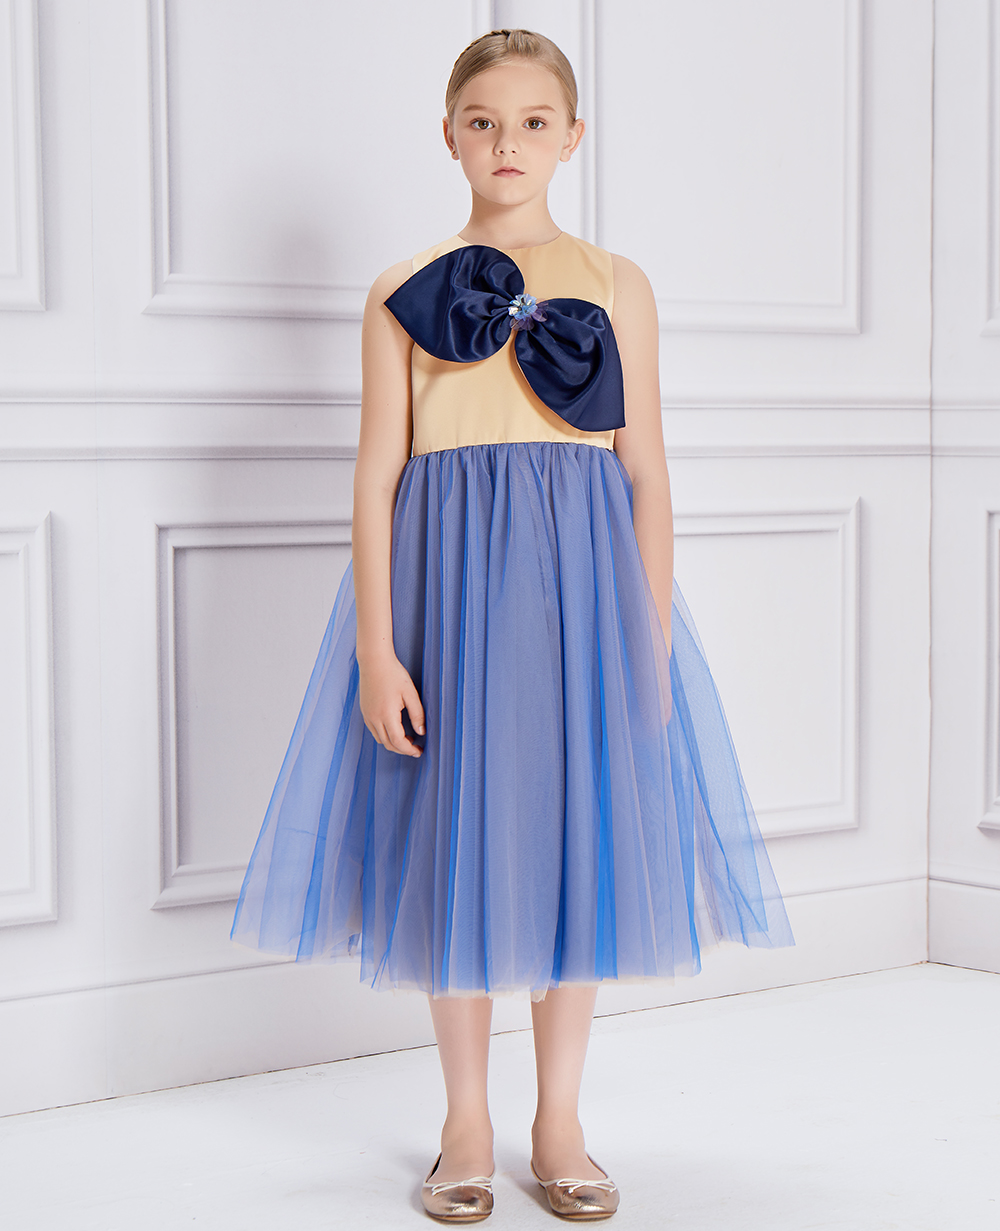 Blue Bow Tulle Dress